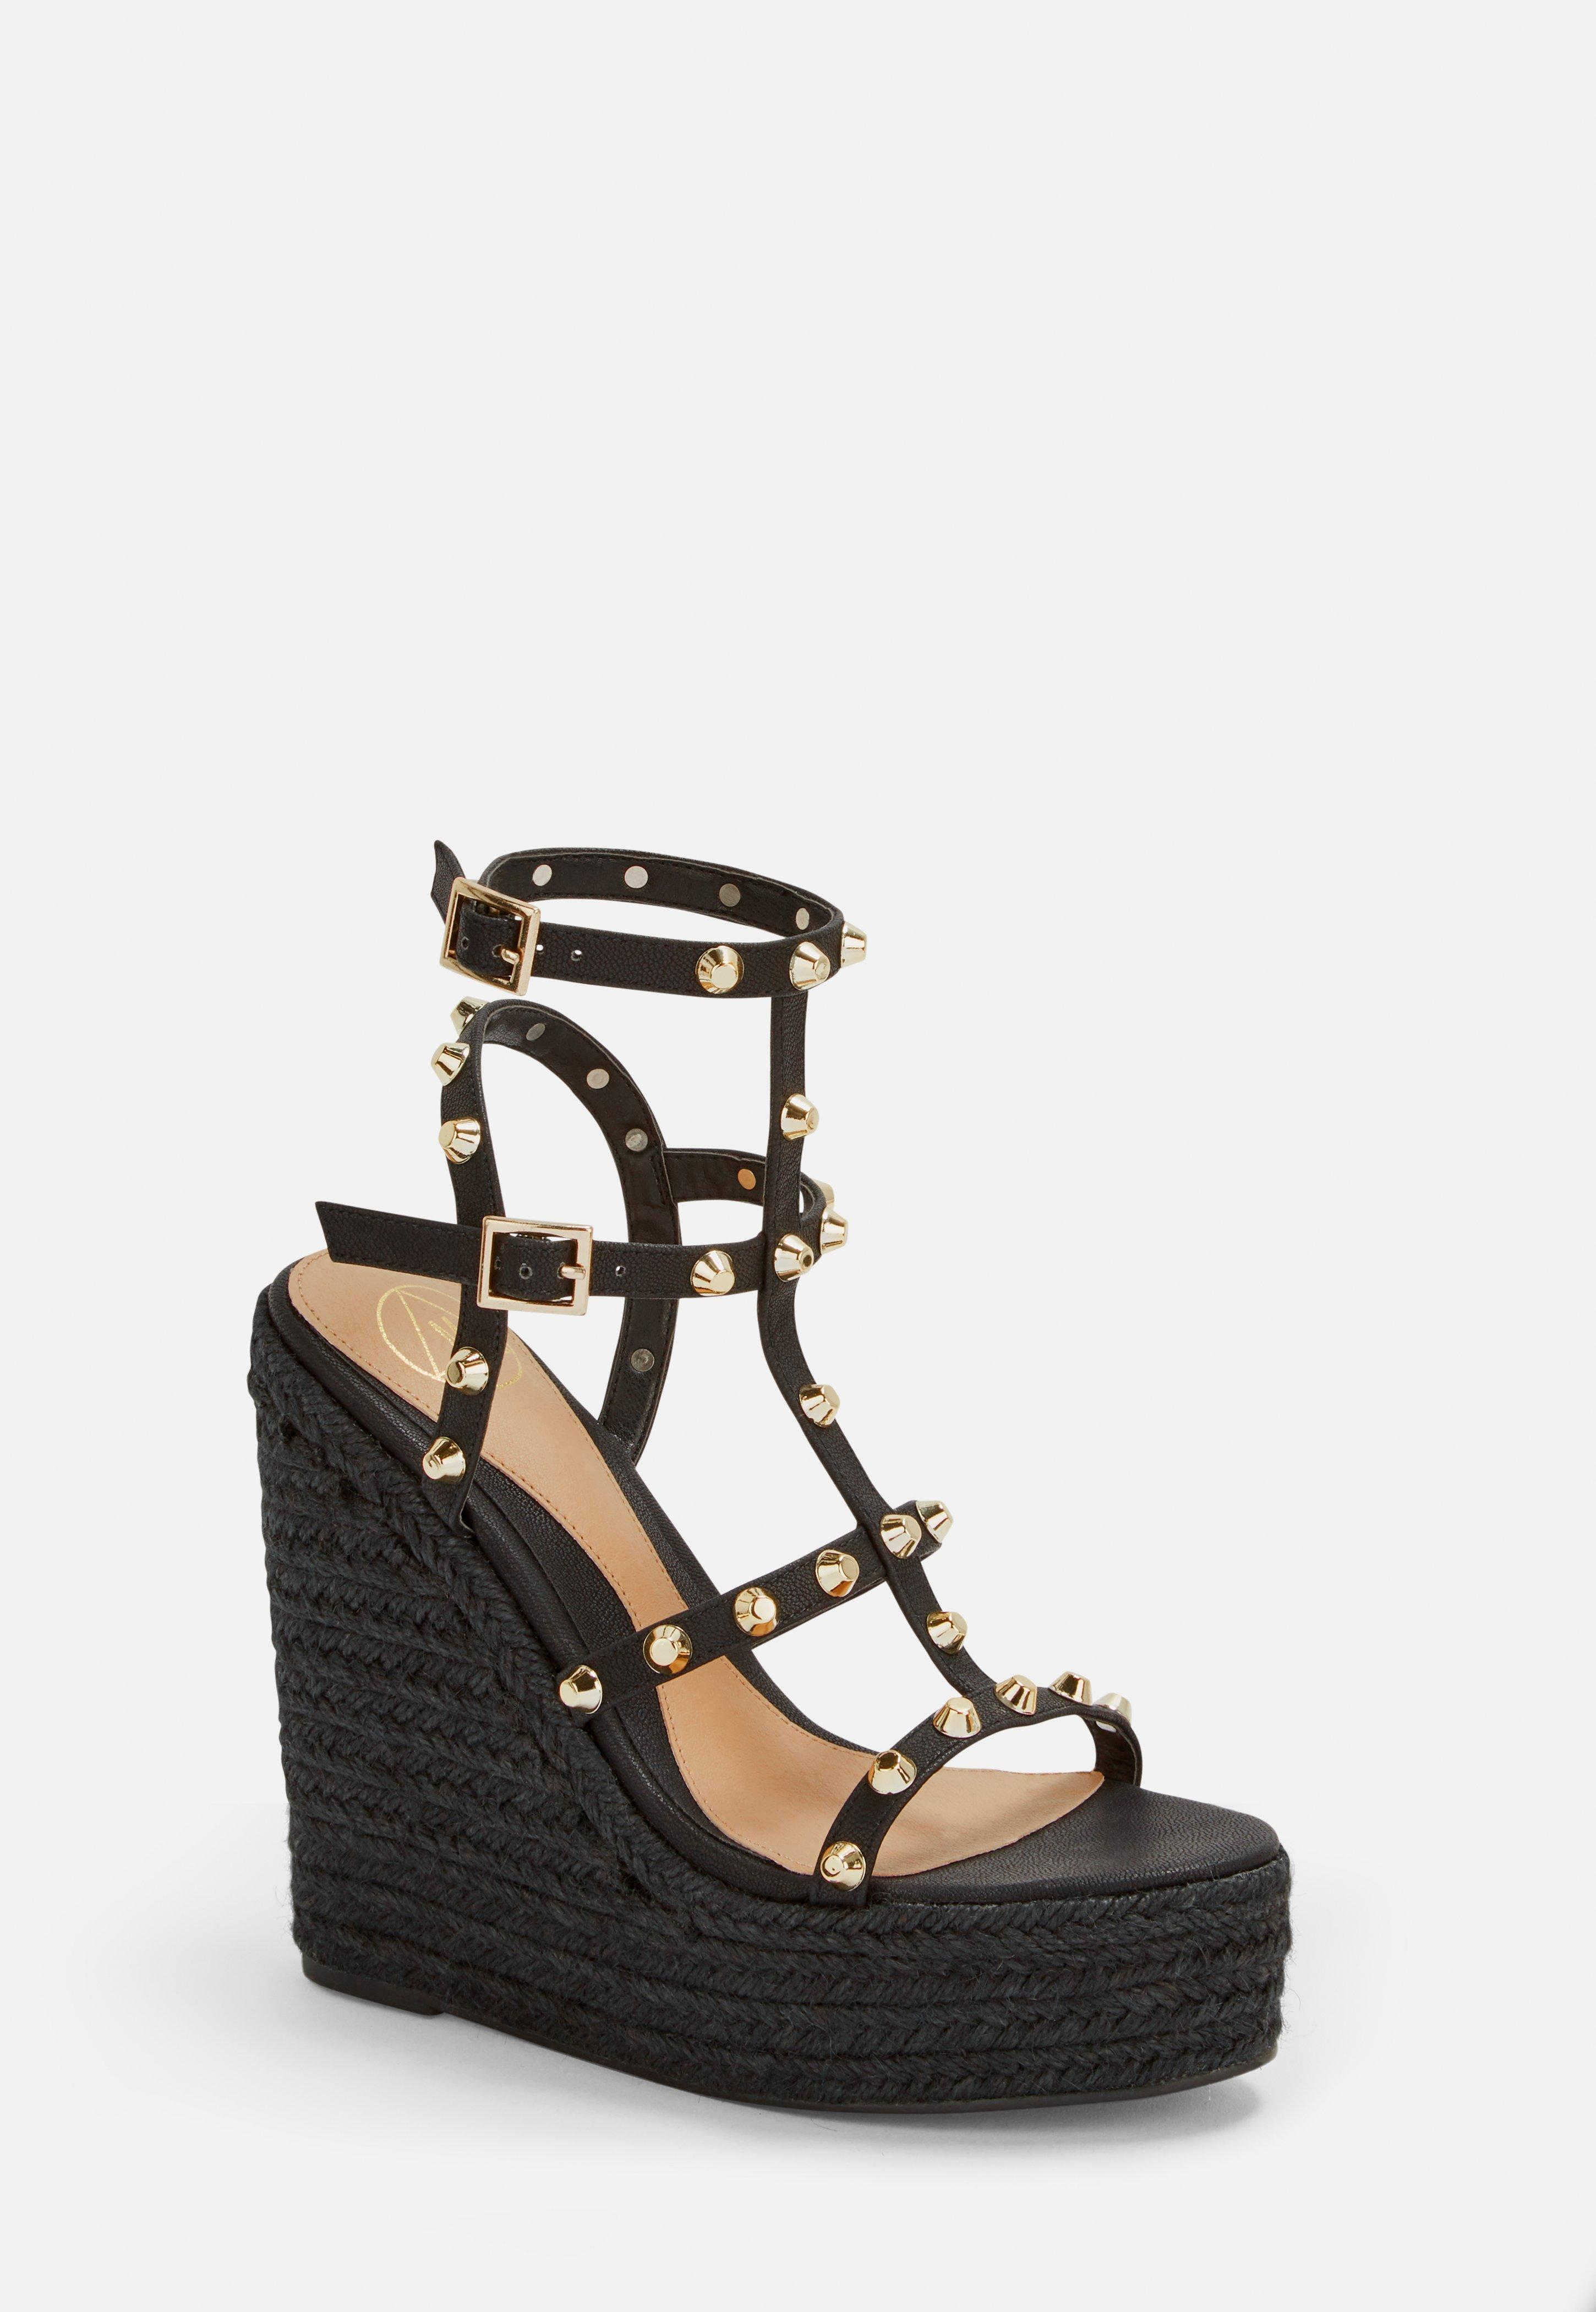 5f049a80d Wedges, Wedge Sandals & Shoes - Missguided